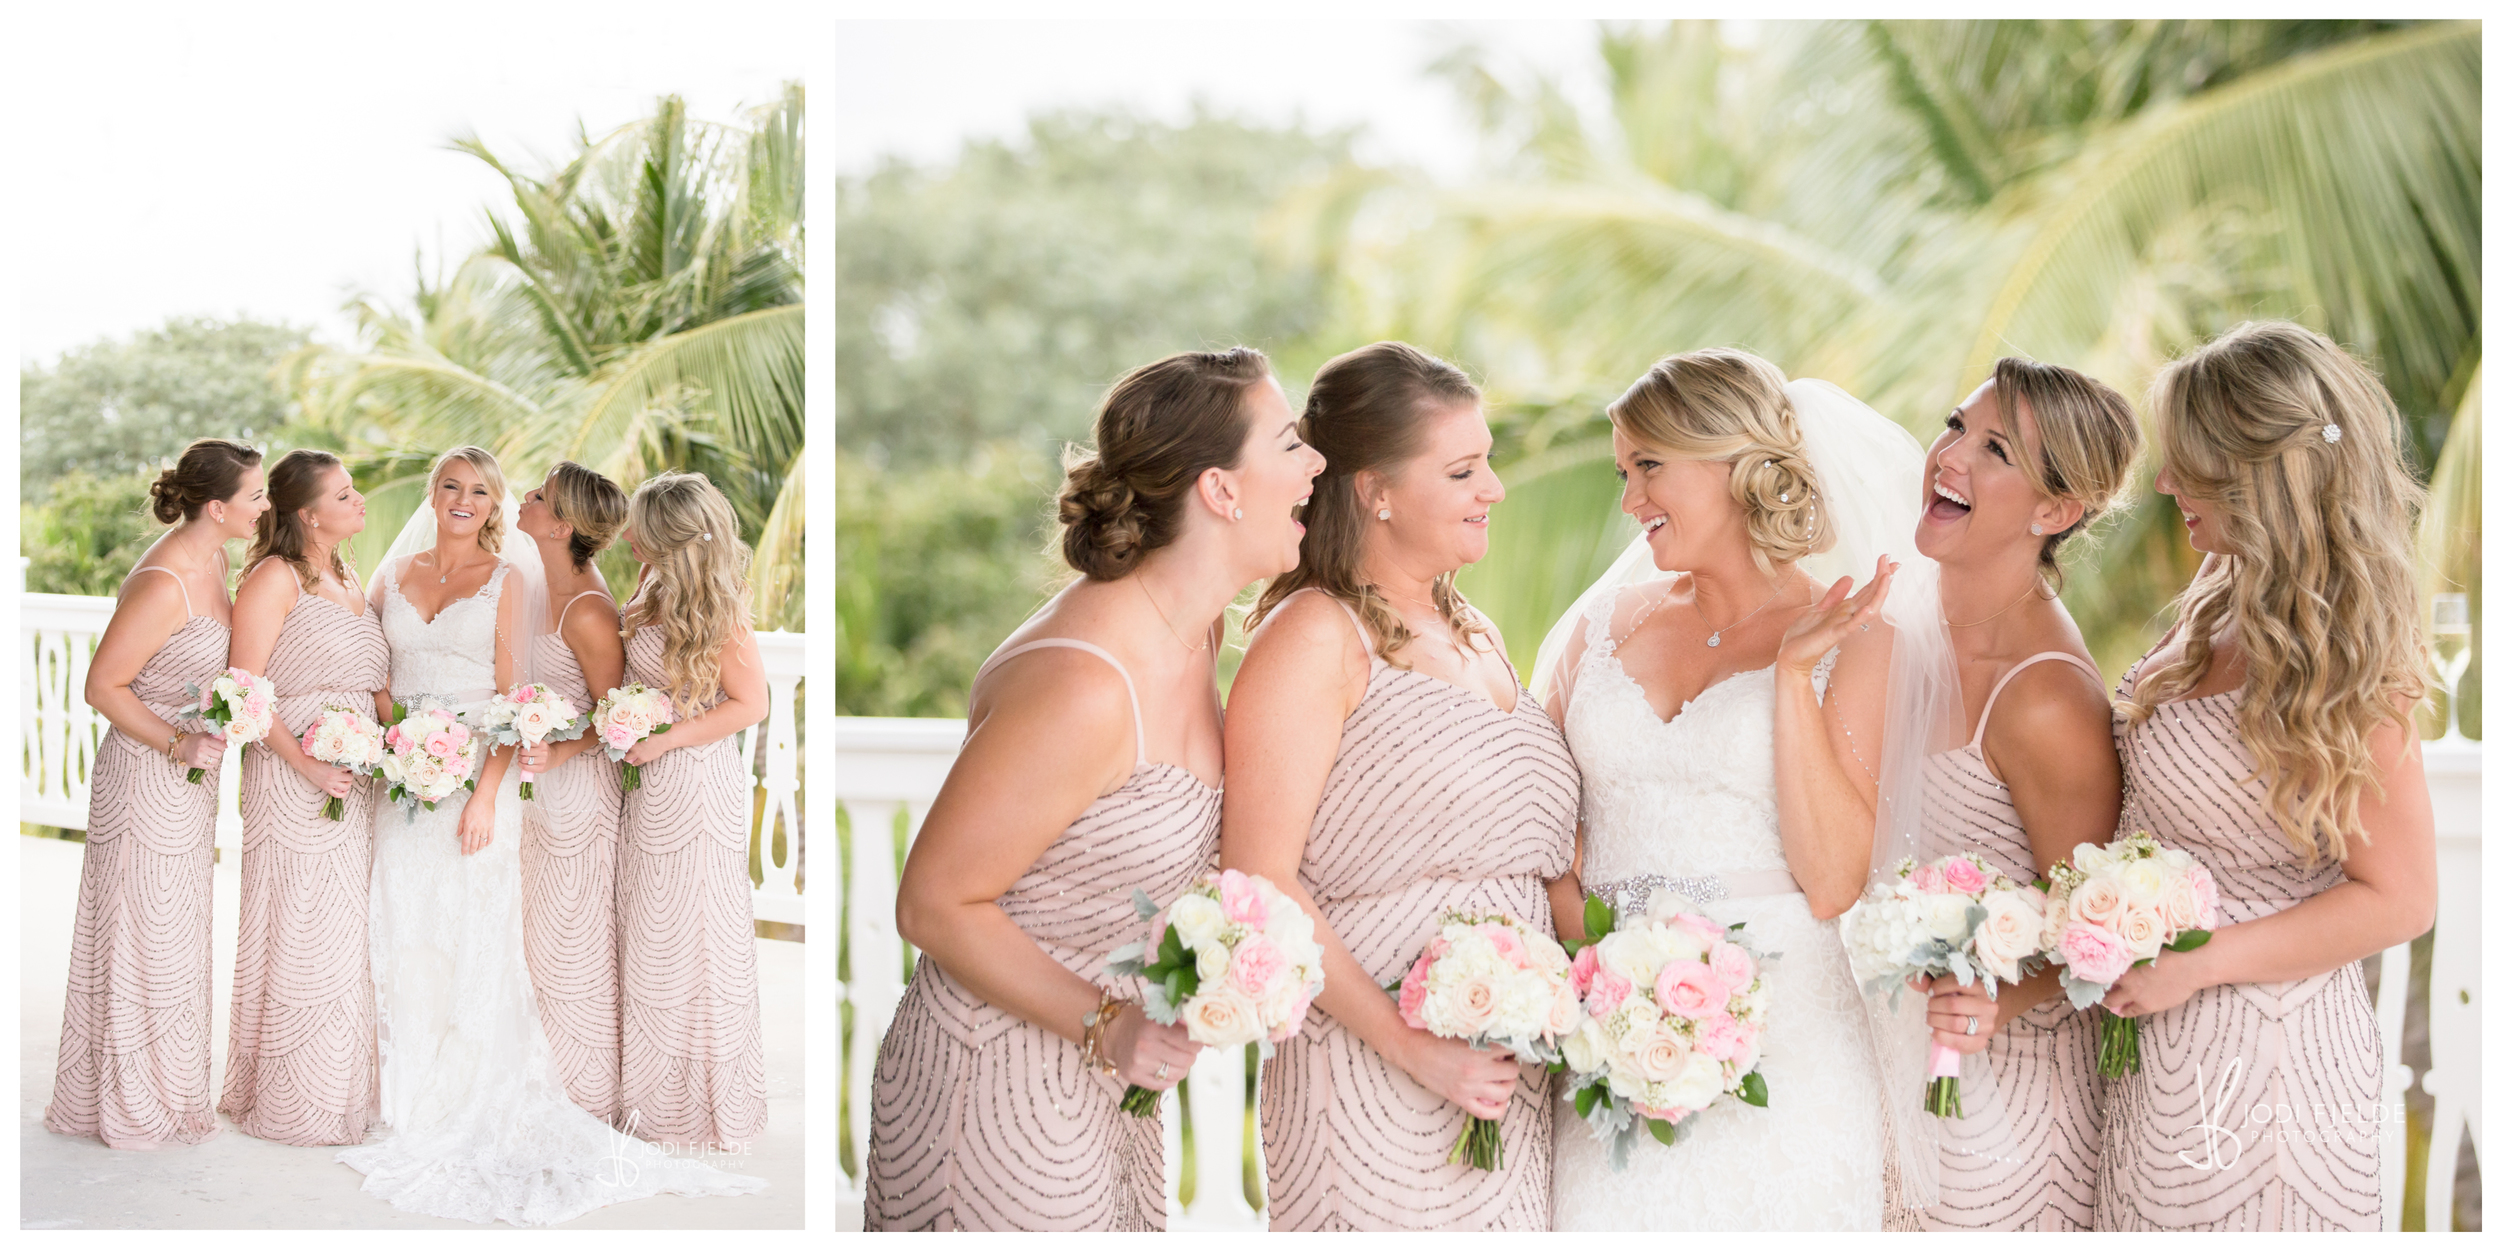 Cocconut_Cove_&_ Marina_ wedding_Kalie_and_Kurt 13.jpg